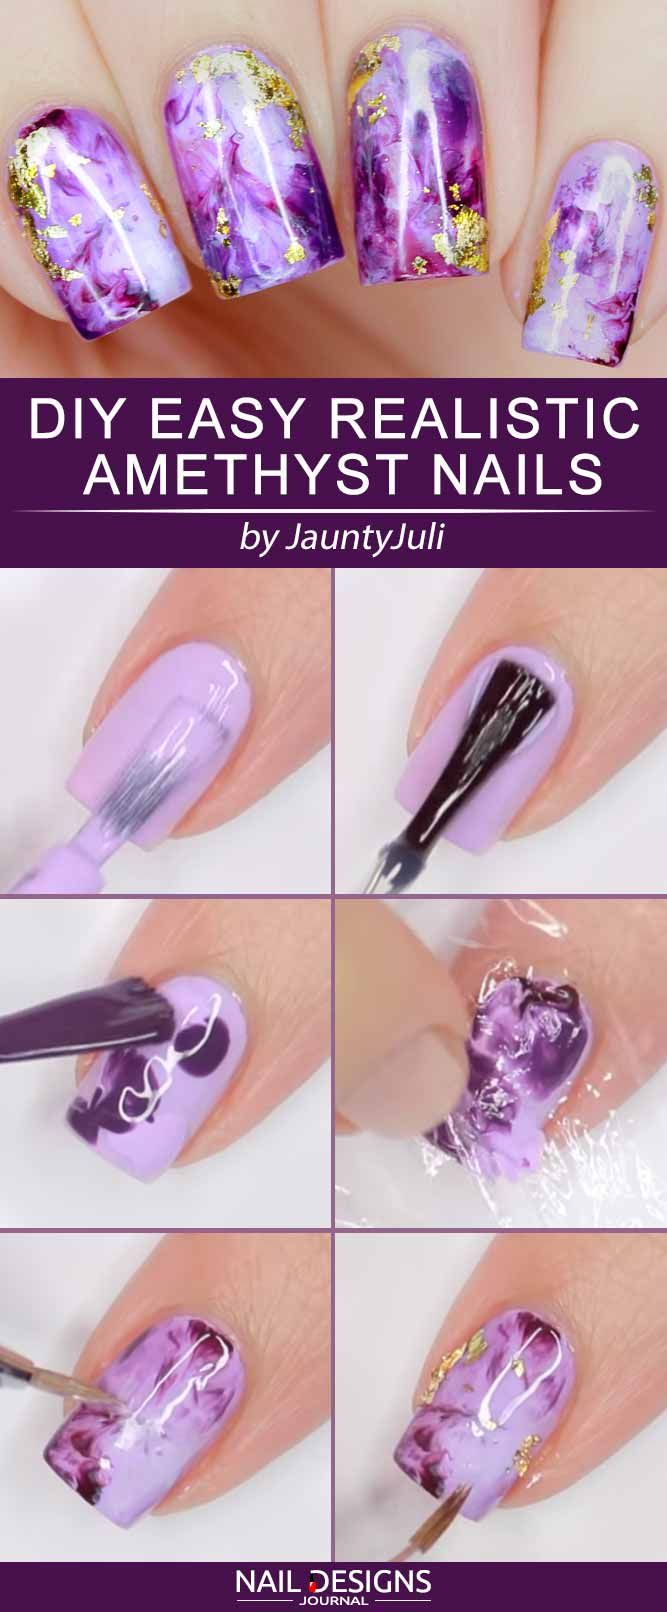 Diy Nails Guide To Perfect At Home Manicure Naildesignsjournal Com Nail Art Diy Easy Diy Nail Designs Nail Art Diy